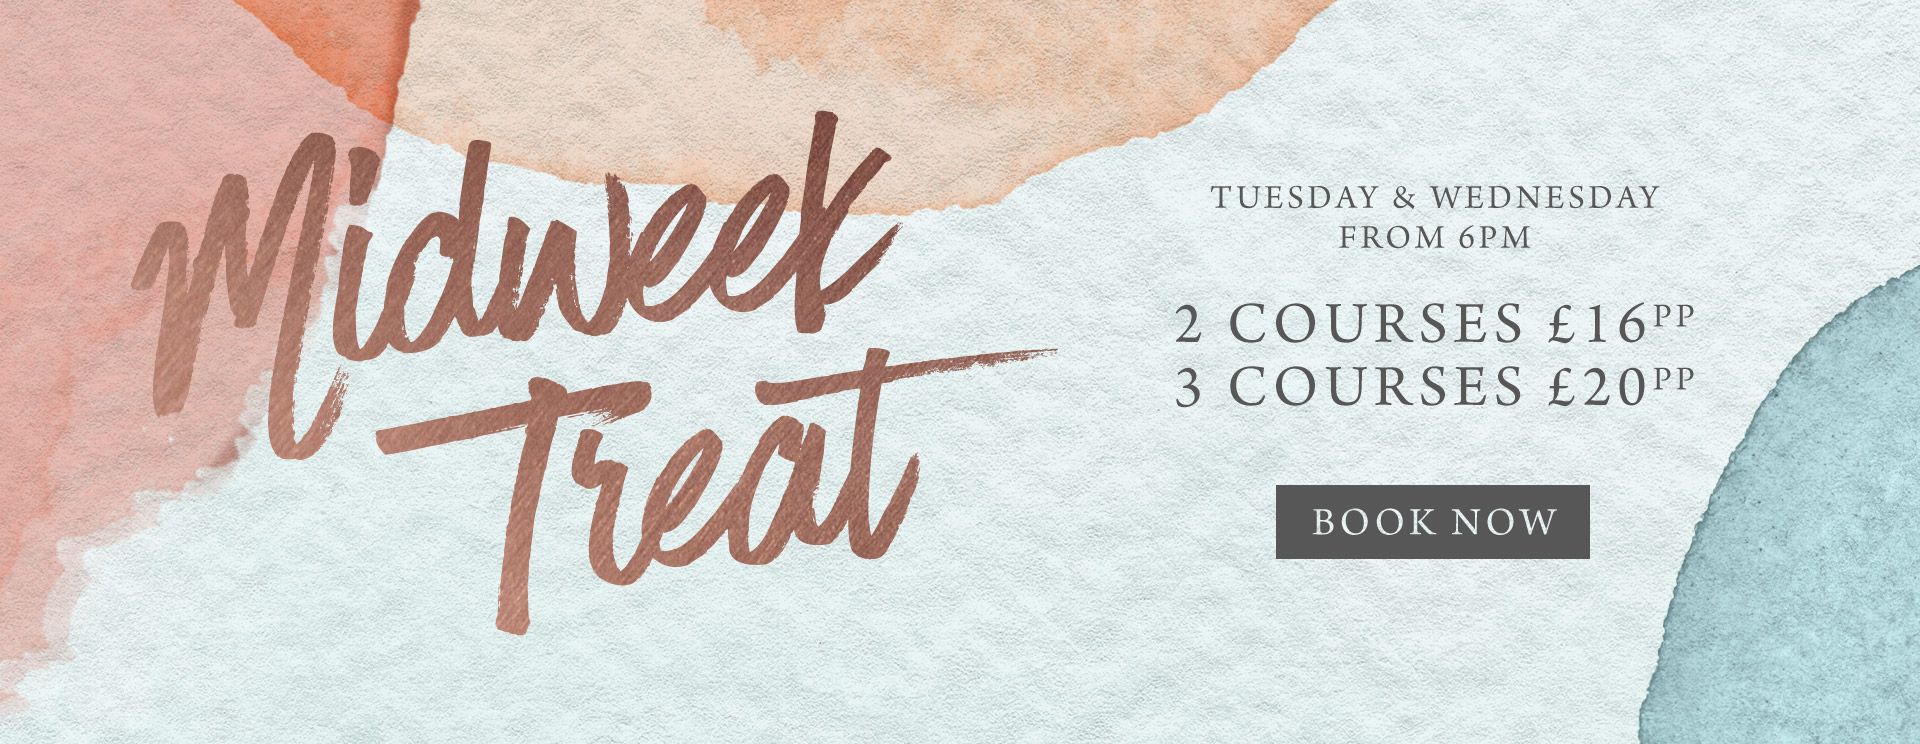 Midweek treat at The Red Lion - Book now